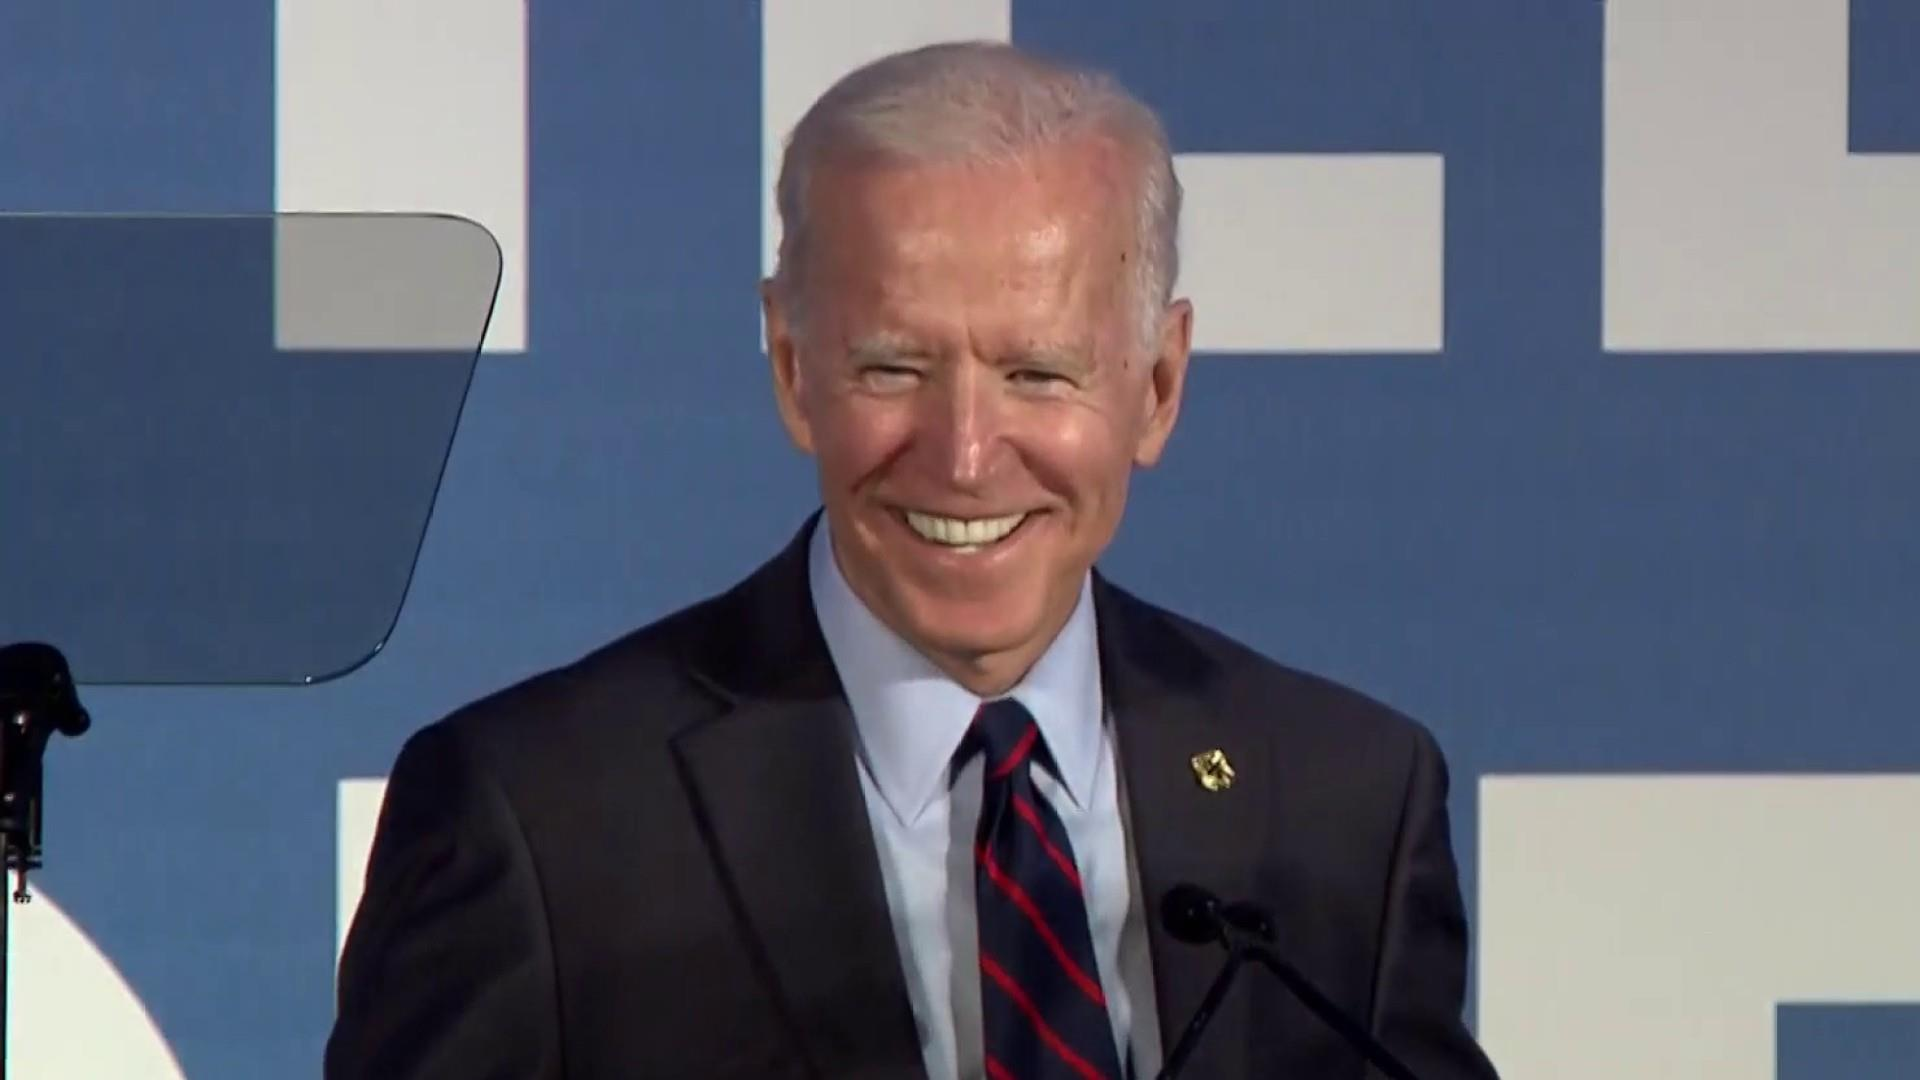 2020 candidates go after Biden but don't use his name